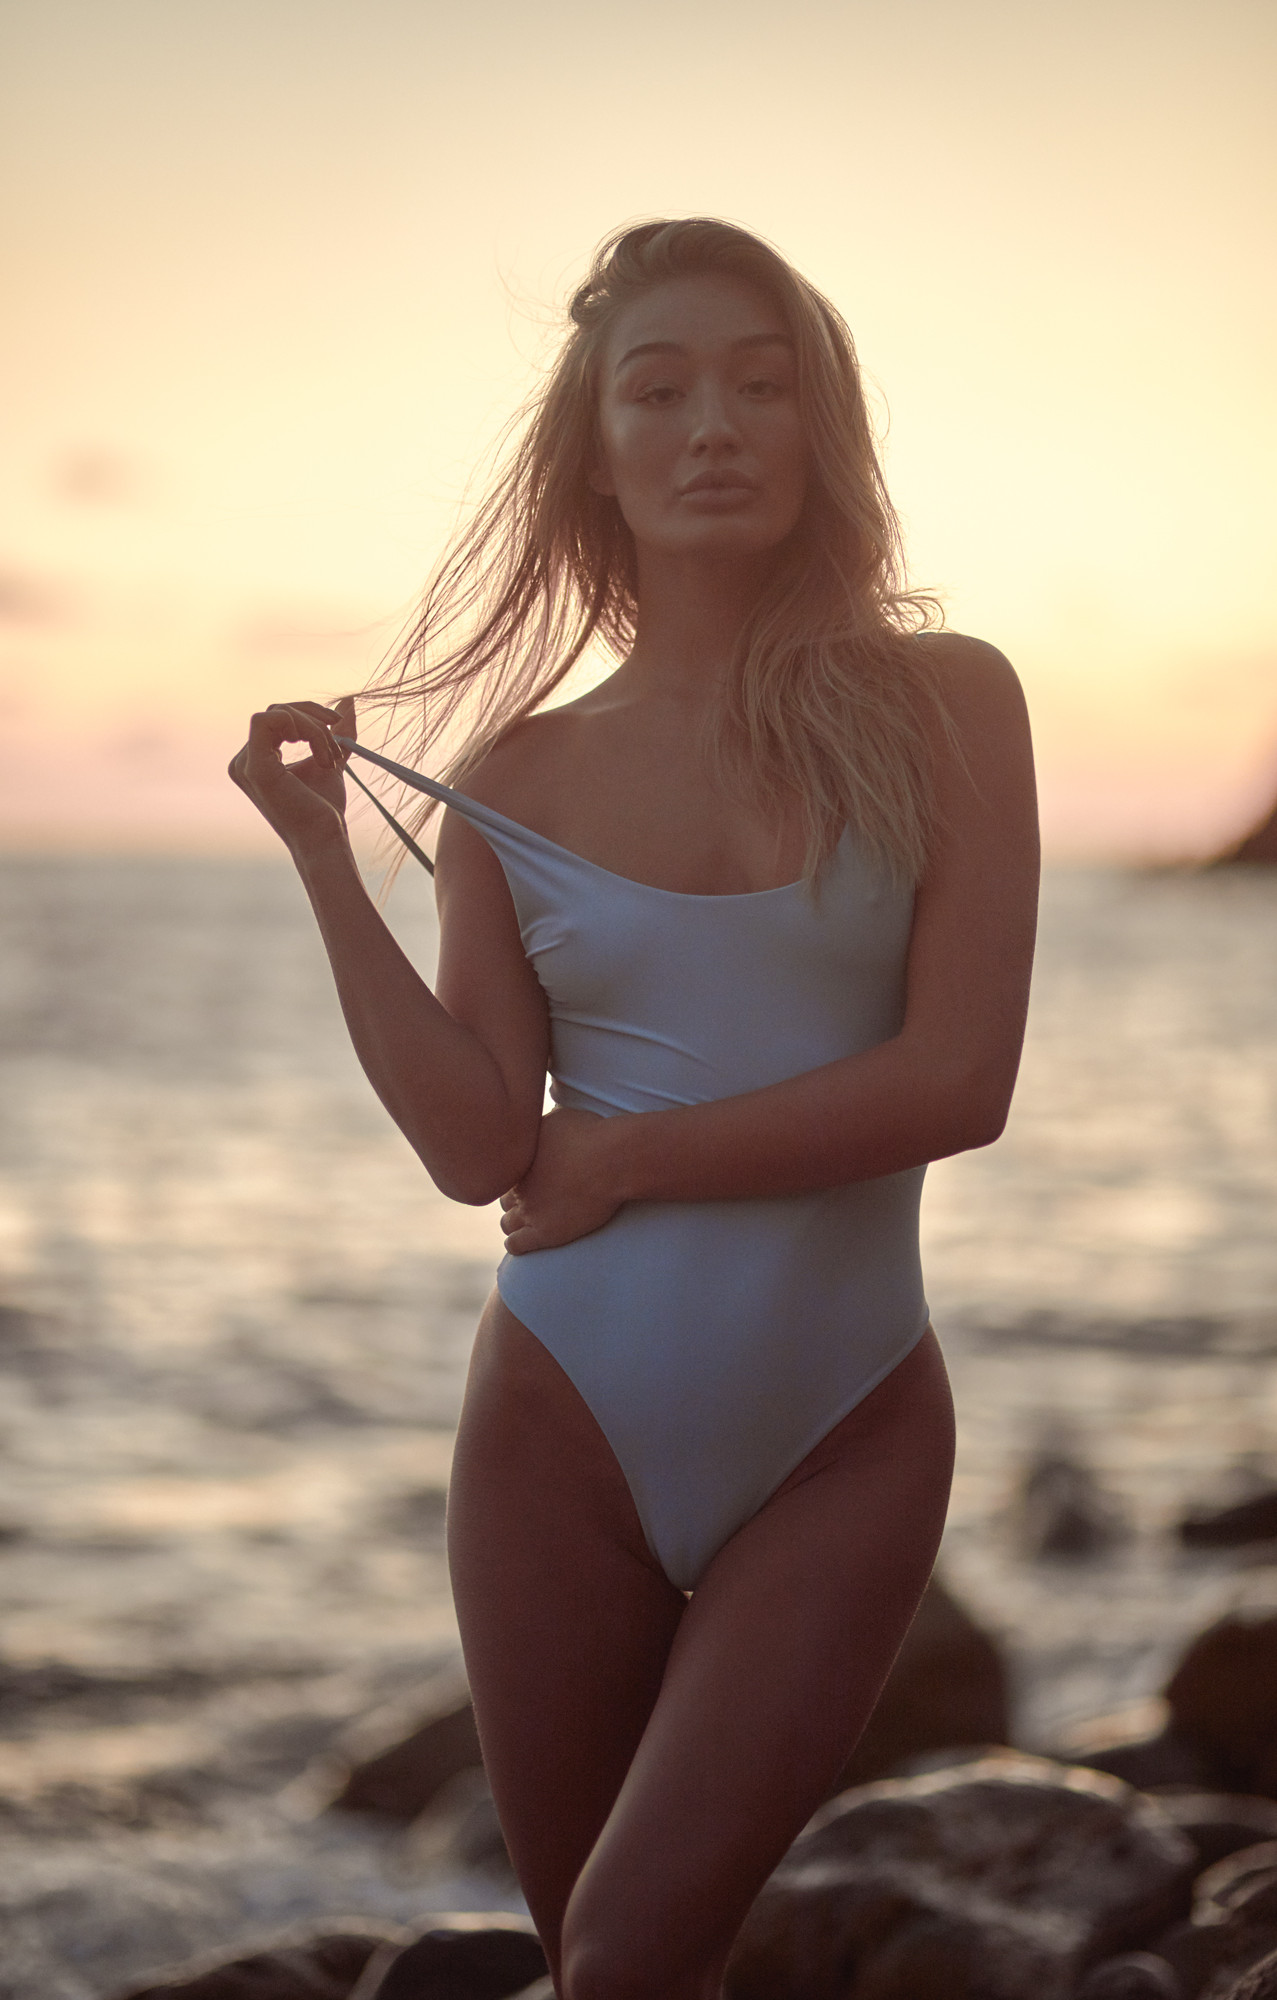 Patrick Patton photography photographs model Bethan Sowerby in a powder blue one piece swimsuit by Kulani Kinis at sunset